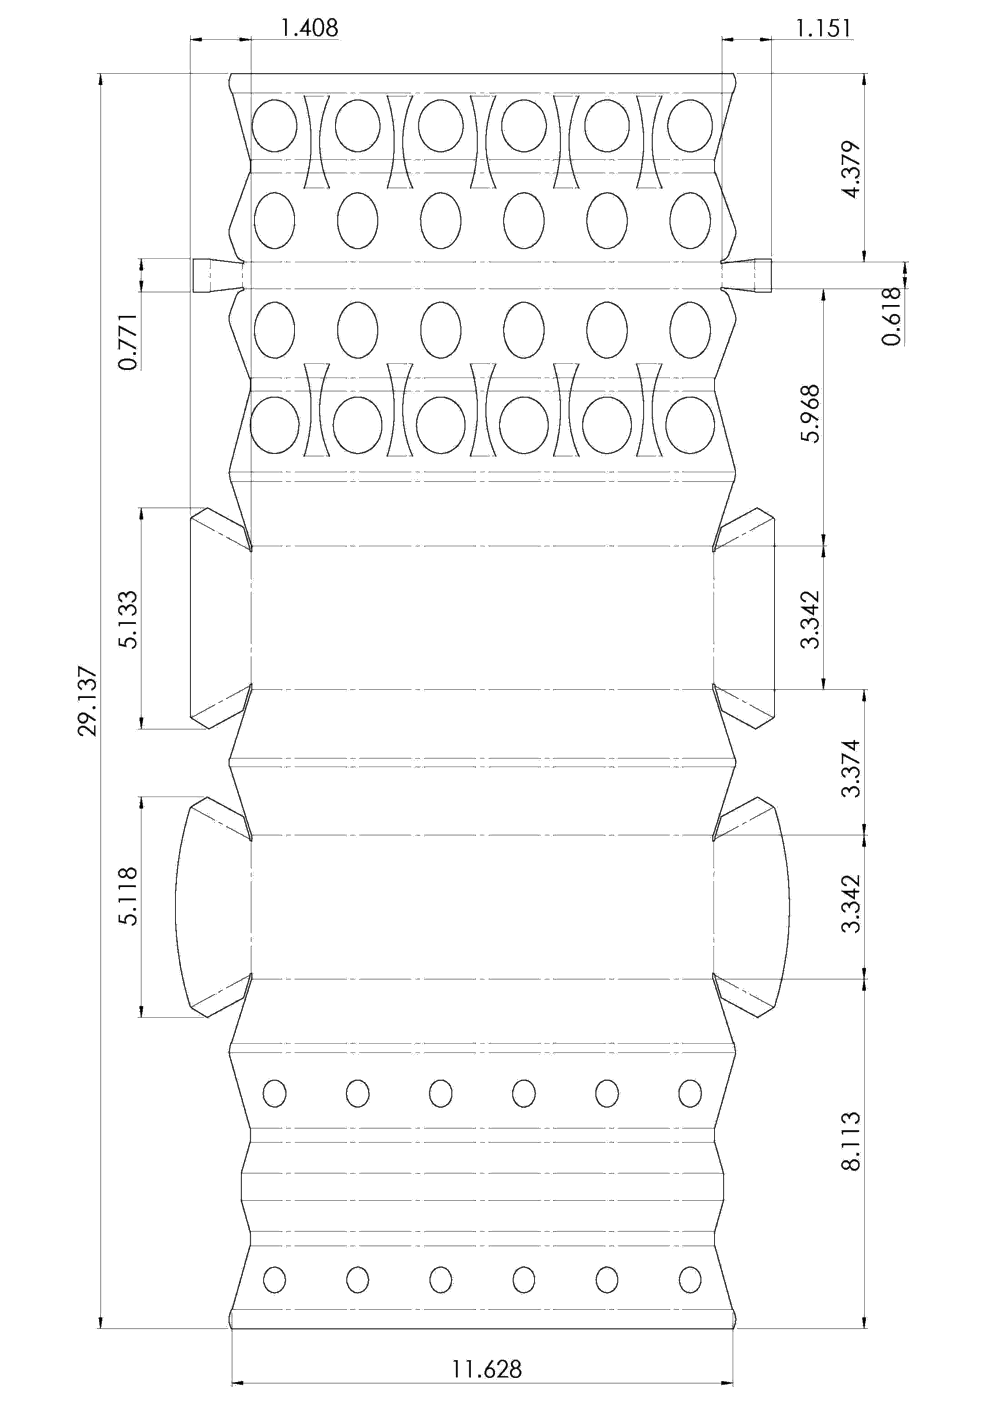 Egg carton schematic-02.png